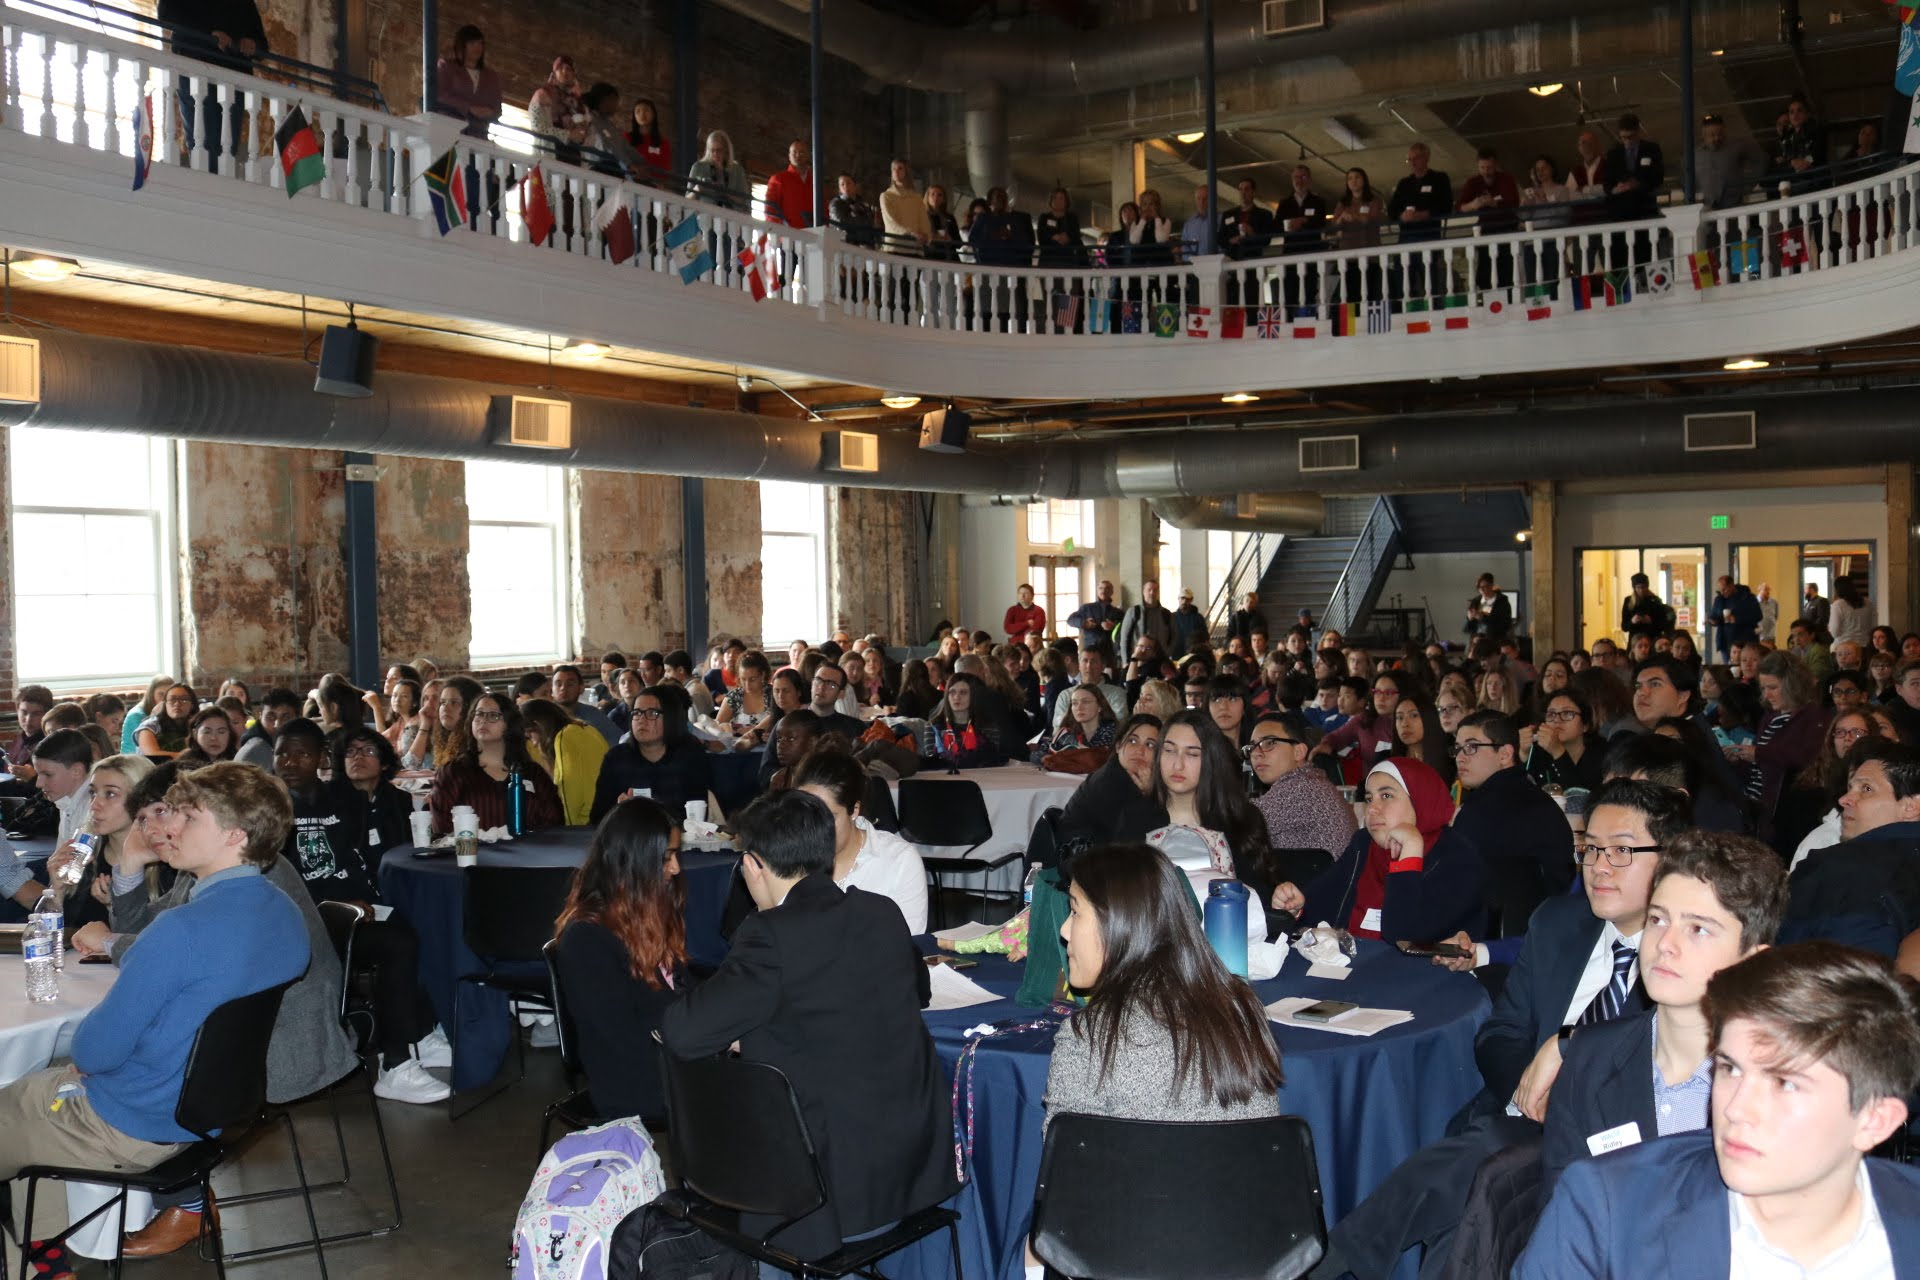 Over 400 participants gathered at the Tivoli on March 2nd, 2019 to participate on the equality-themed World Affairs Challenge.